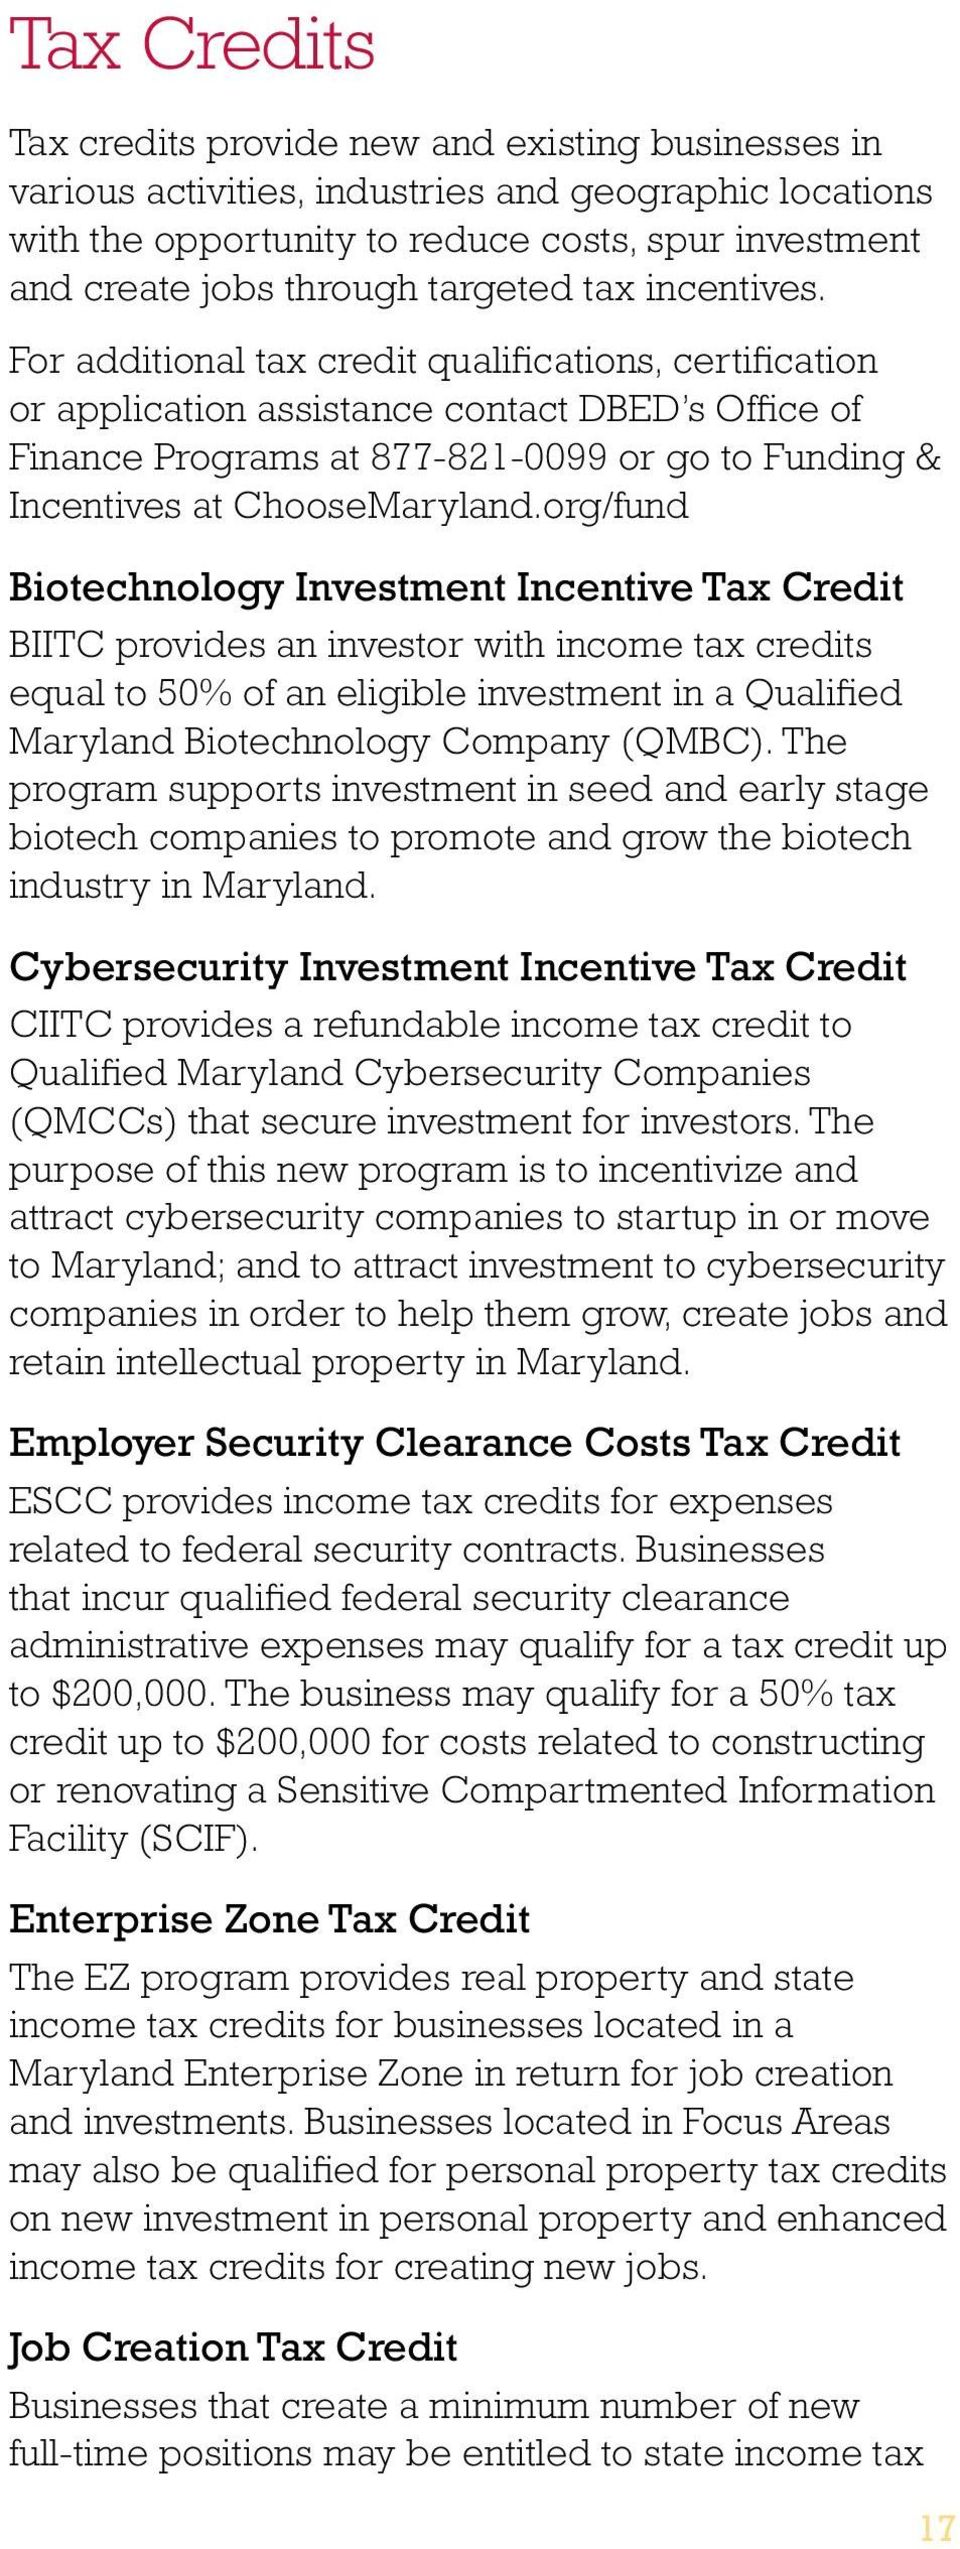 For additional tax credit qualifications, certification or application assistance contact DBED s Office of Finance Programs at 877-821-0099 or go to Funding & Incentives at ChooseMaryland.